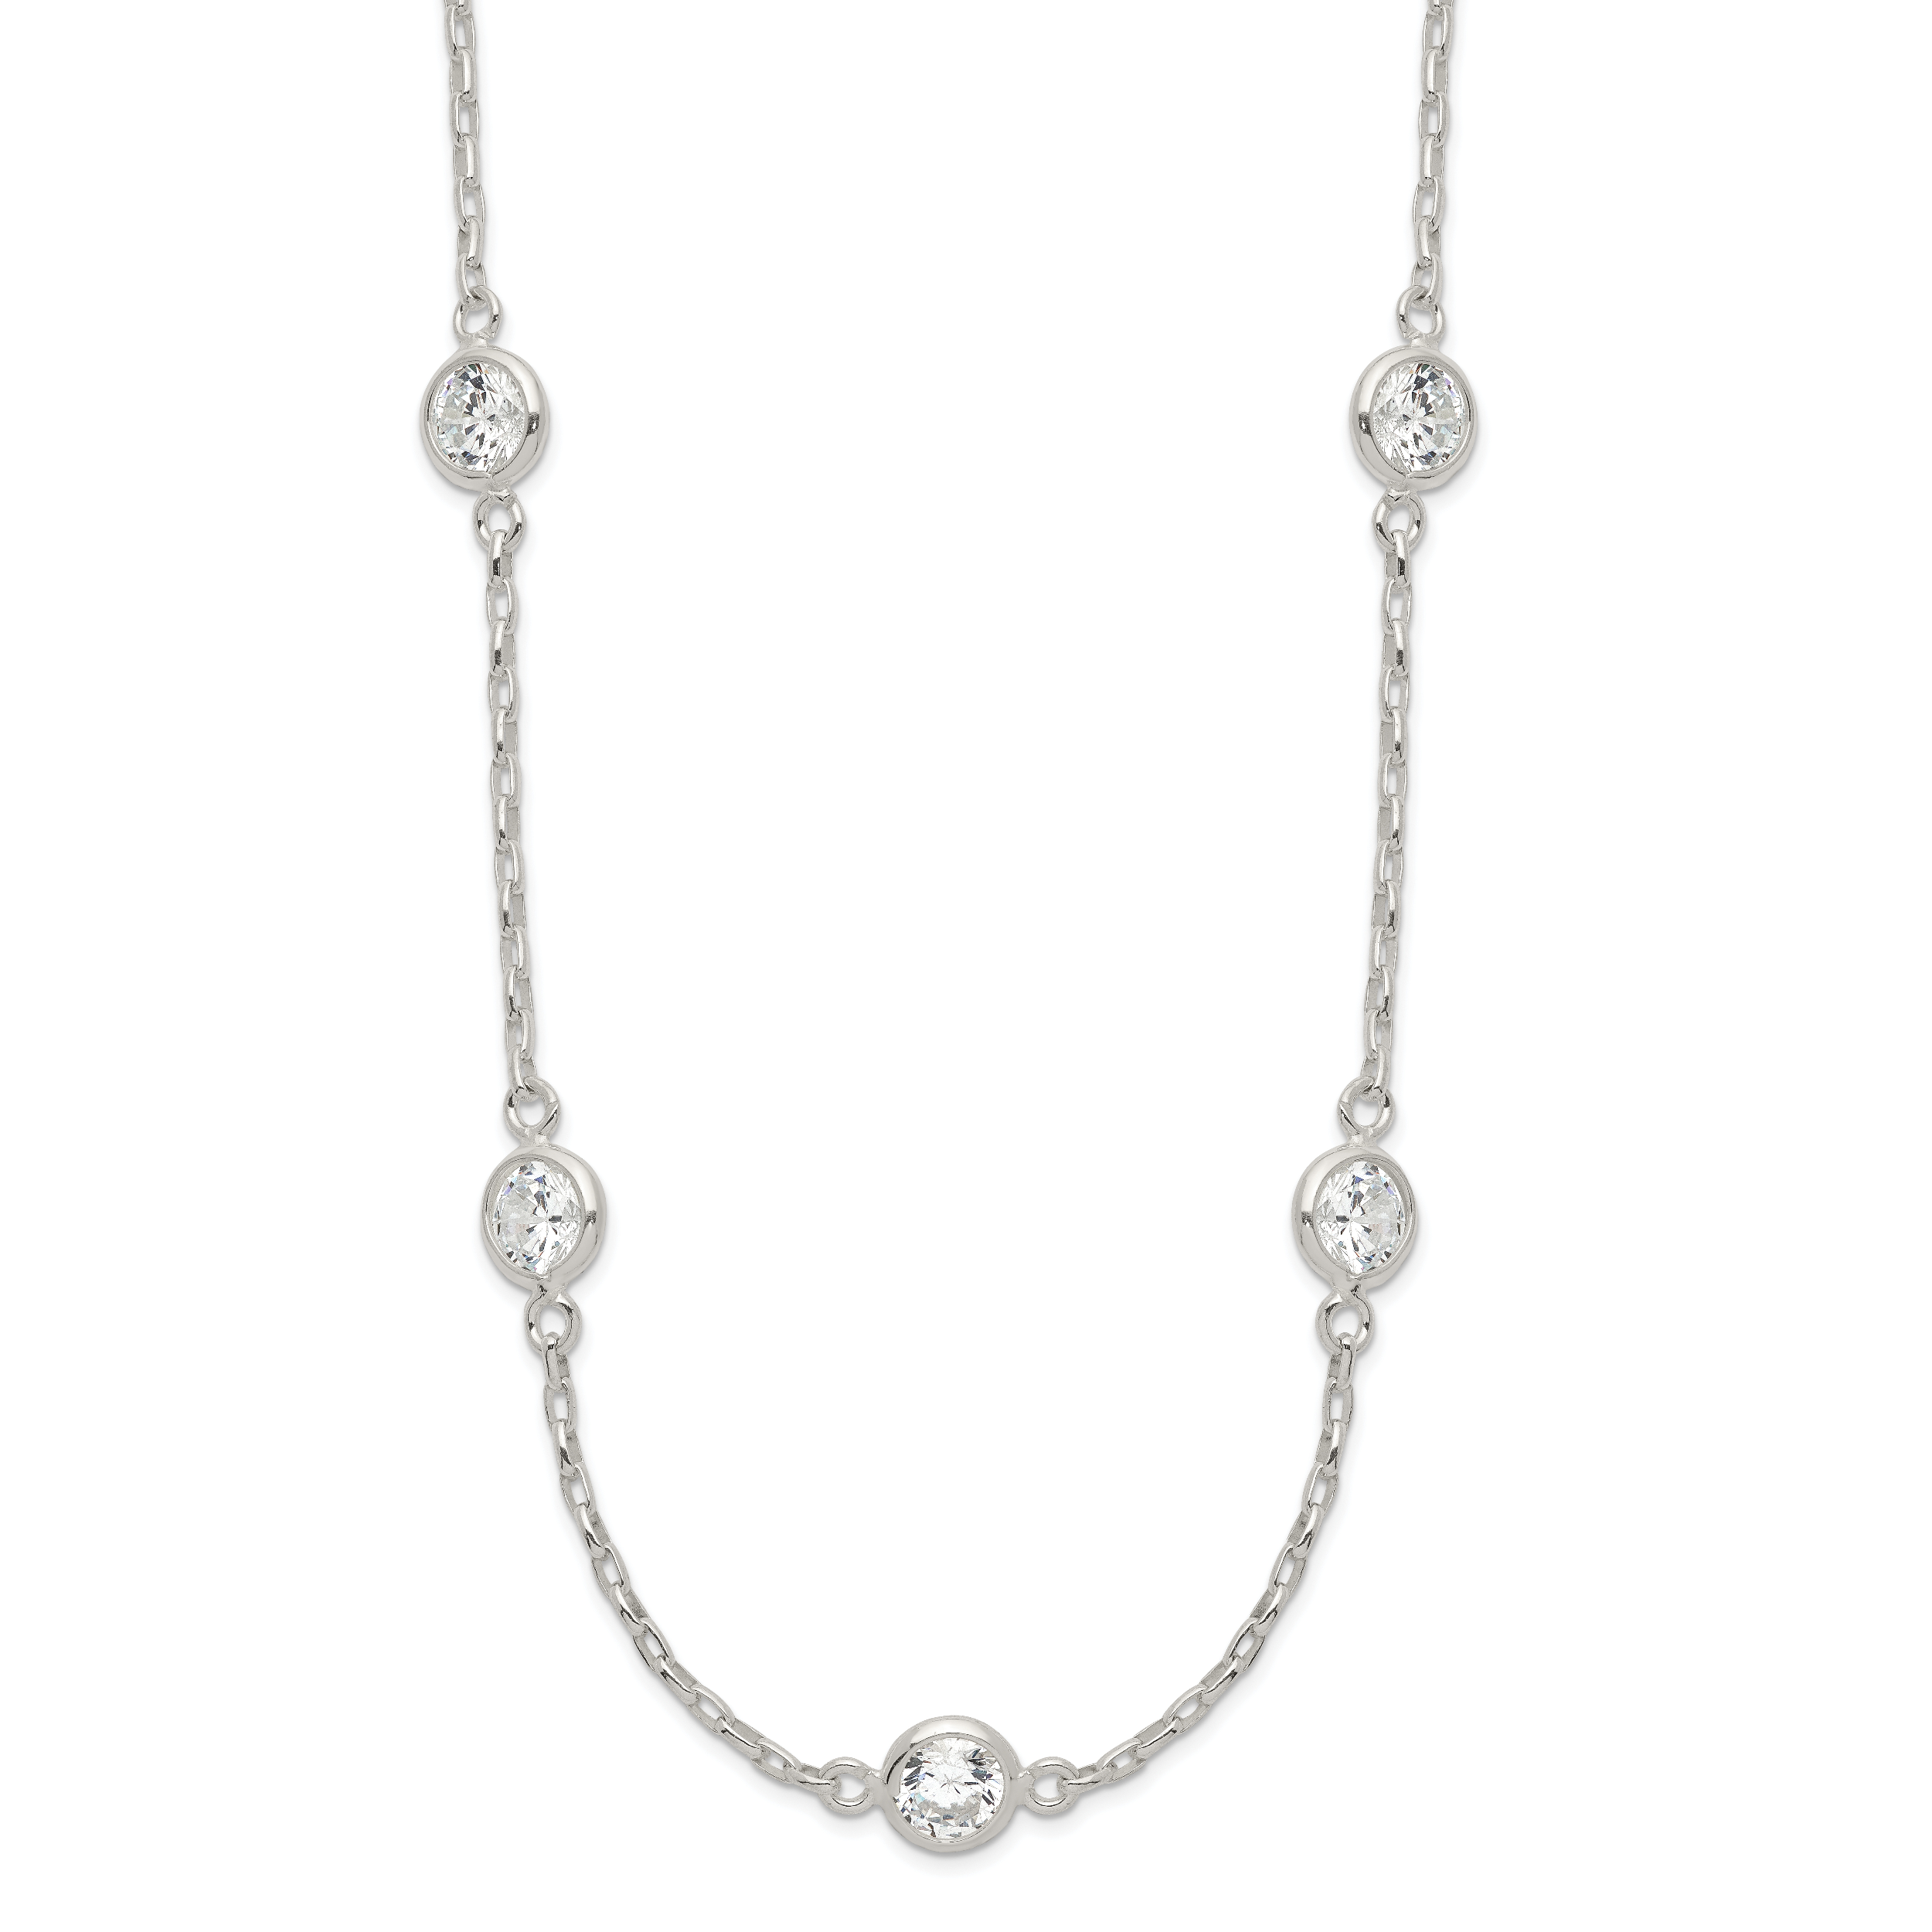 Sterling Silver Polished CZ Necklace | Weight: 3.37 grams, Length: 18mm, Width: mm